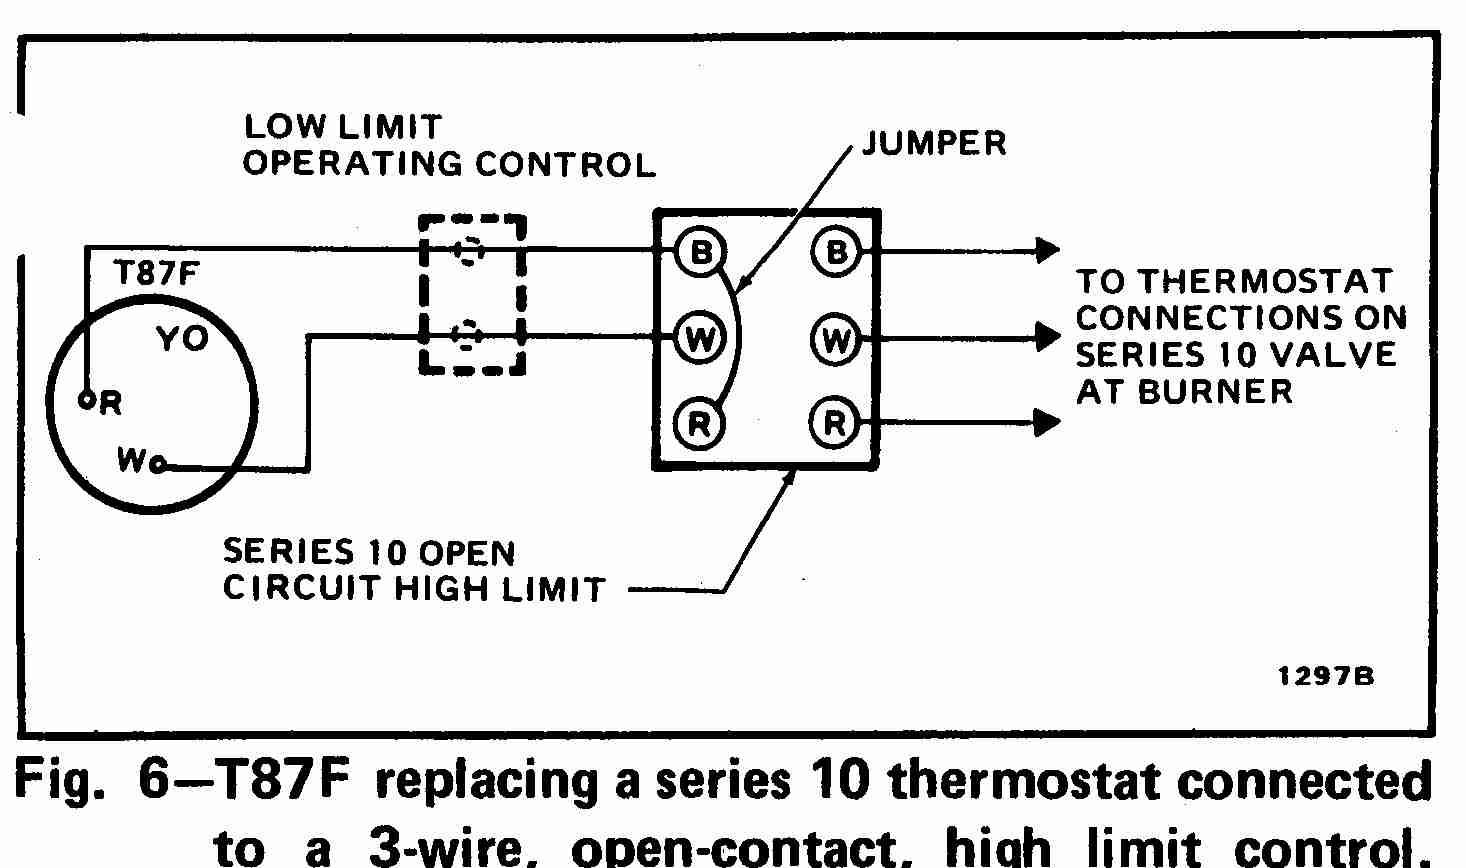 Room Thermostat Wiring Diagrams For Hvac Systems 7- Wire Thermostat Wiring  Diagram 2 Wire Thermostat Wiring Diagram